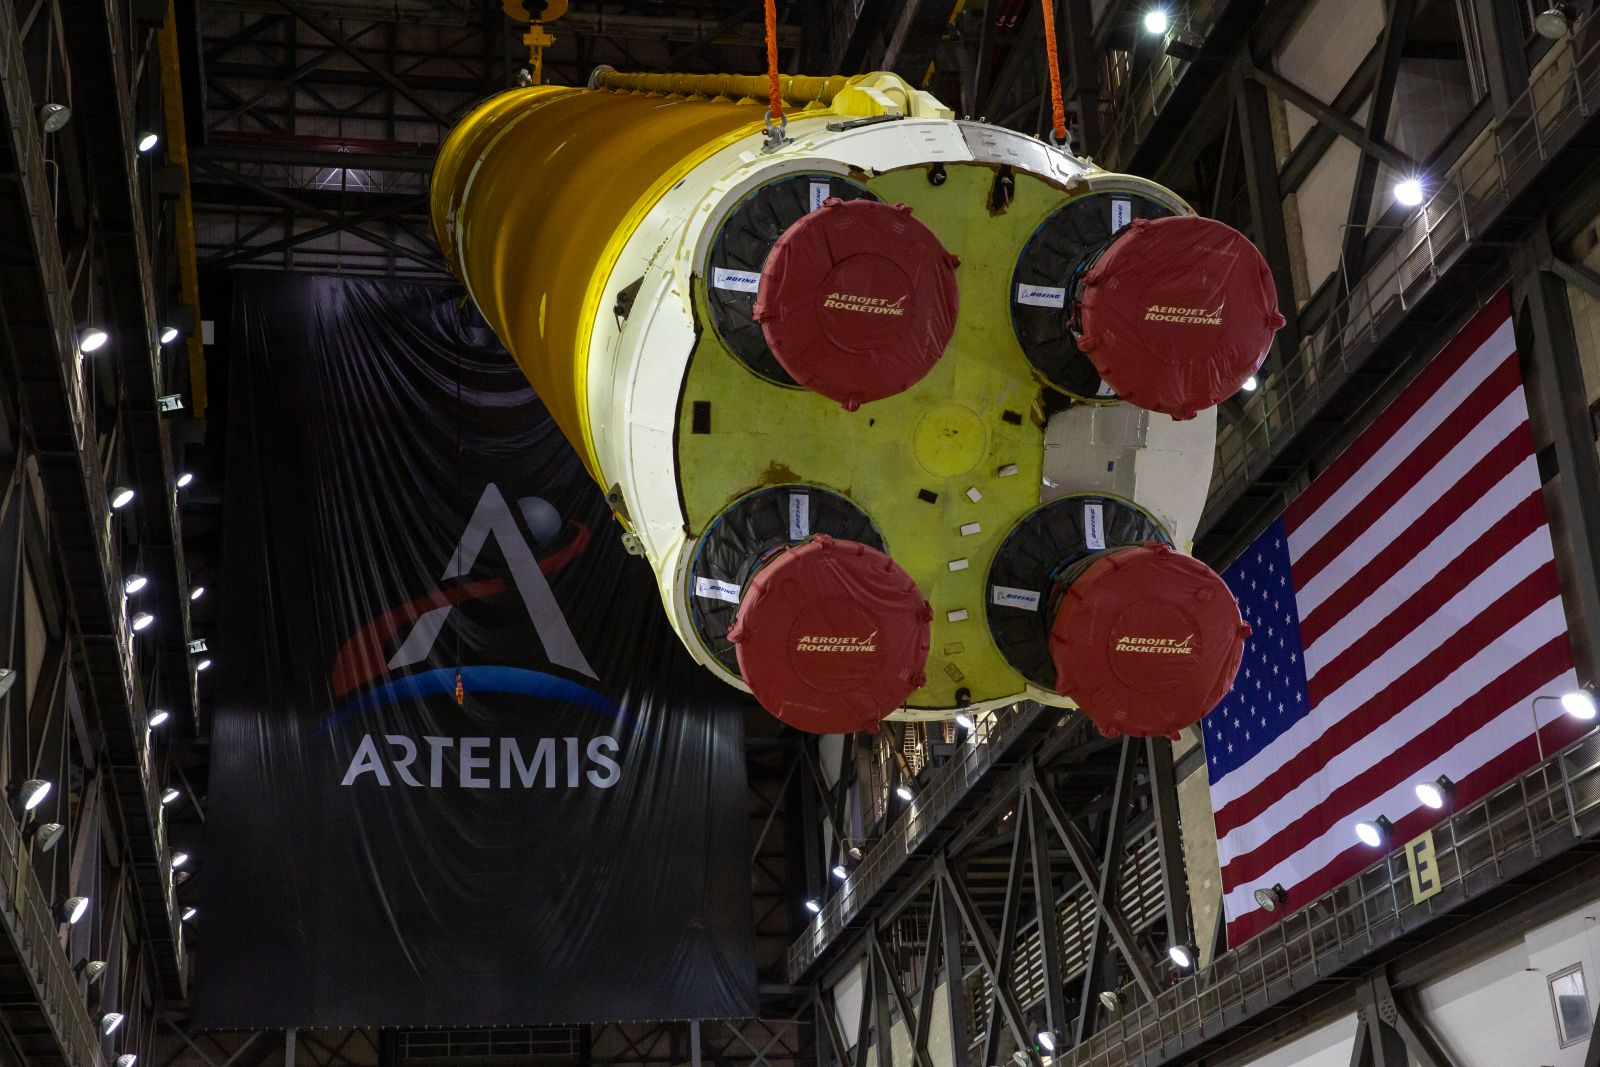 The first SLS core stage is lifted in the Vehicle Assembly Building's transfer aisle. Credit: NASA